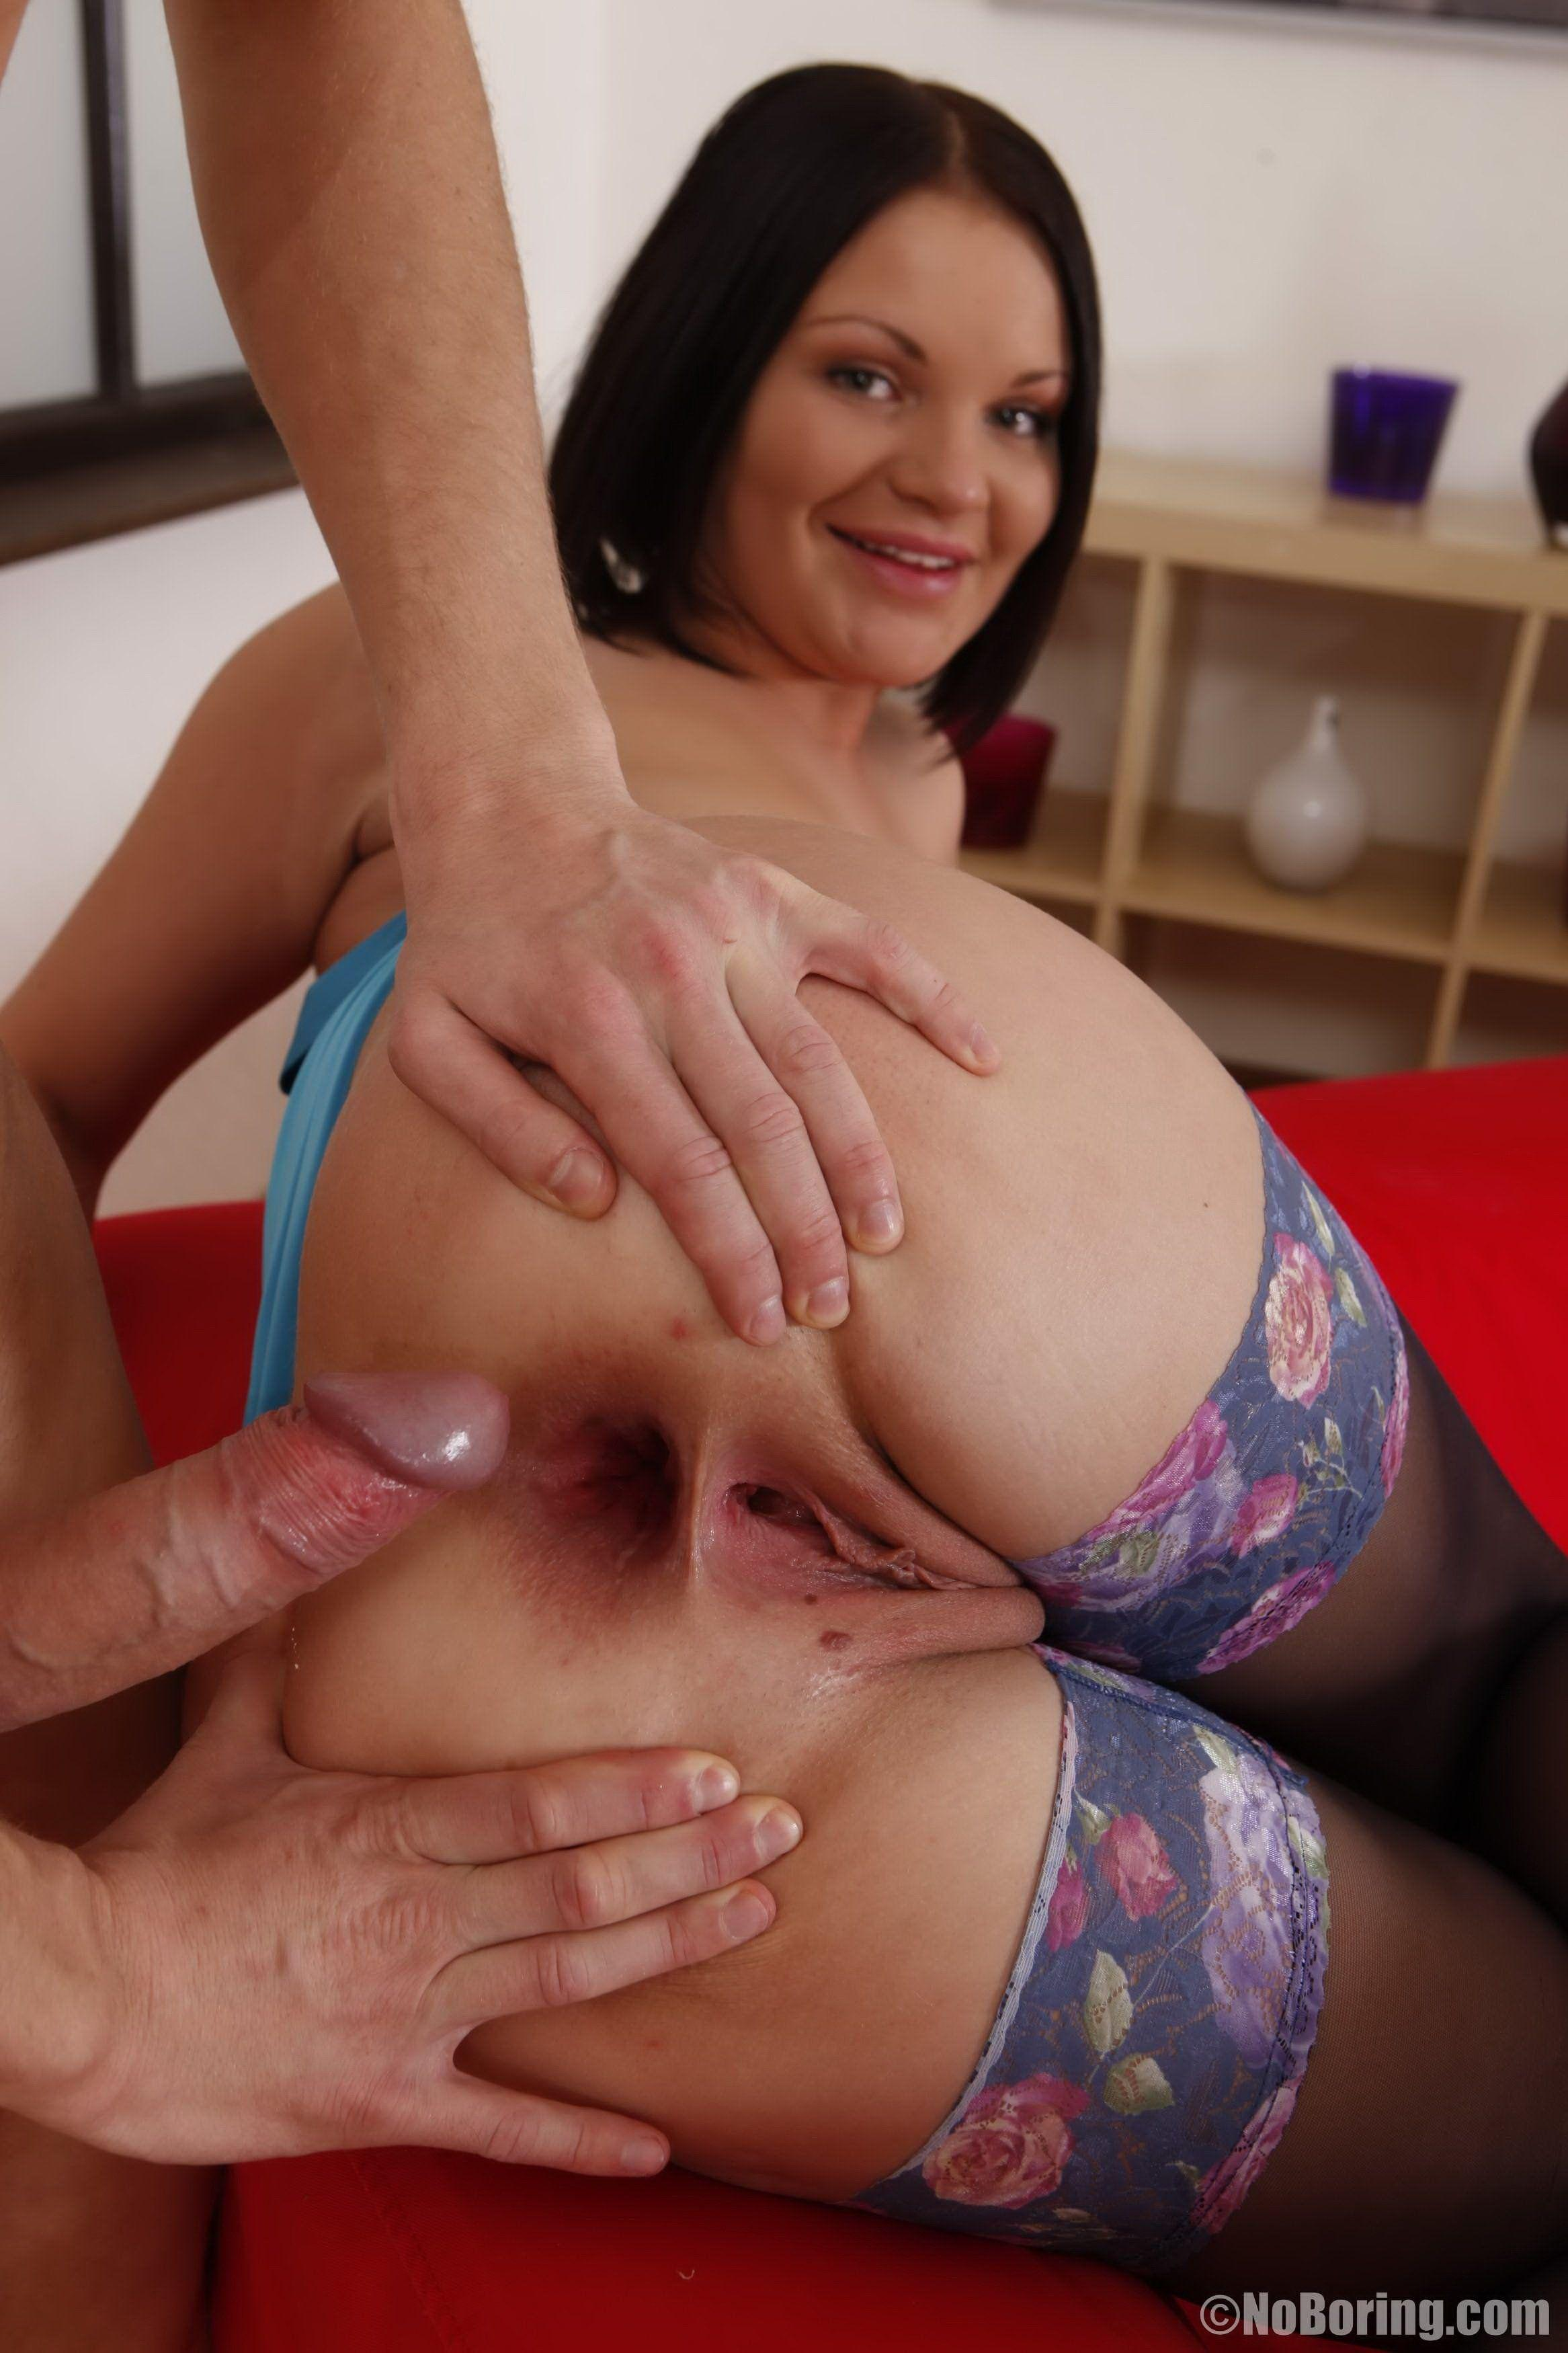 Her first double anal threesome. Blowjob porno . Adult archive ...